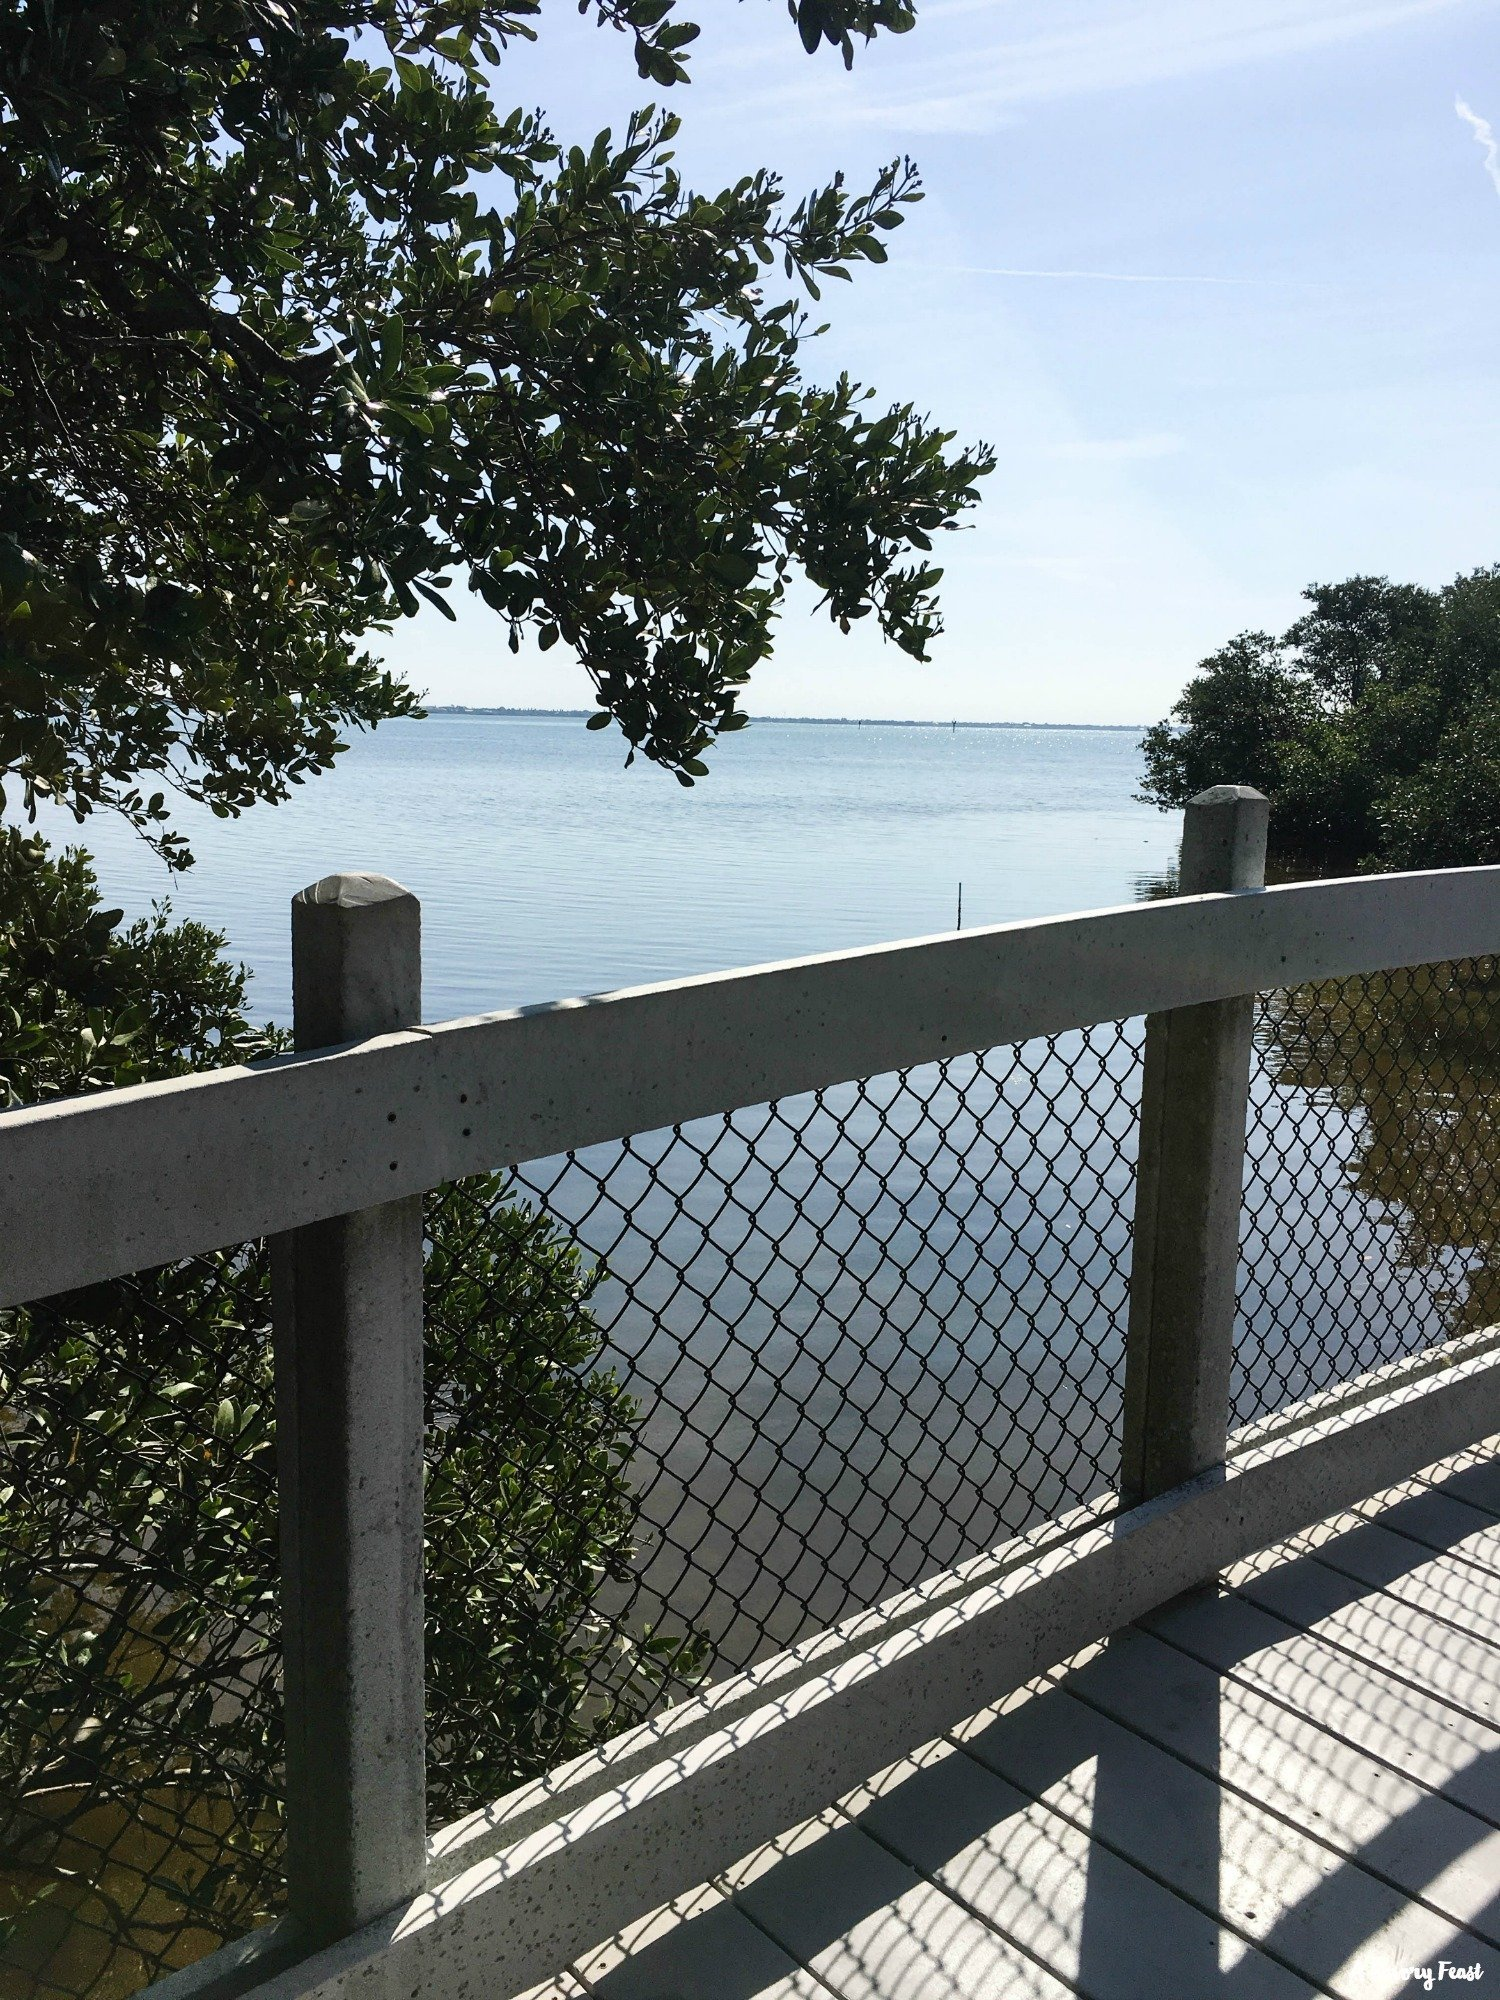 Explore Joan M. Durante park on Longboat Key